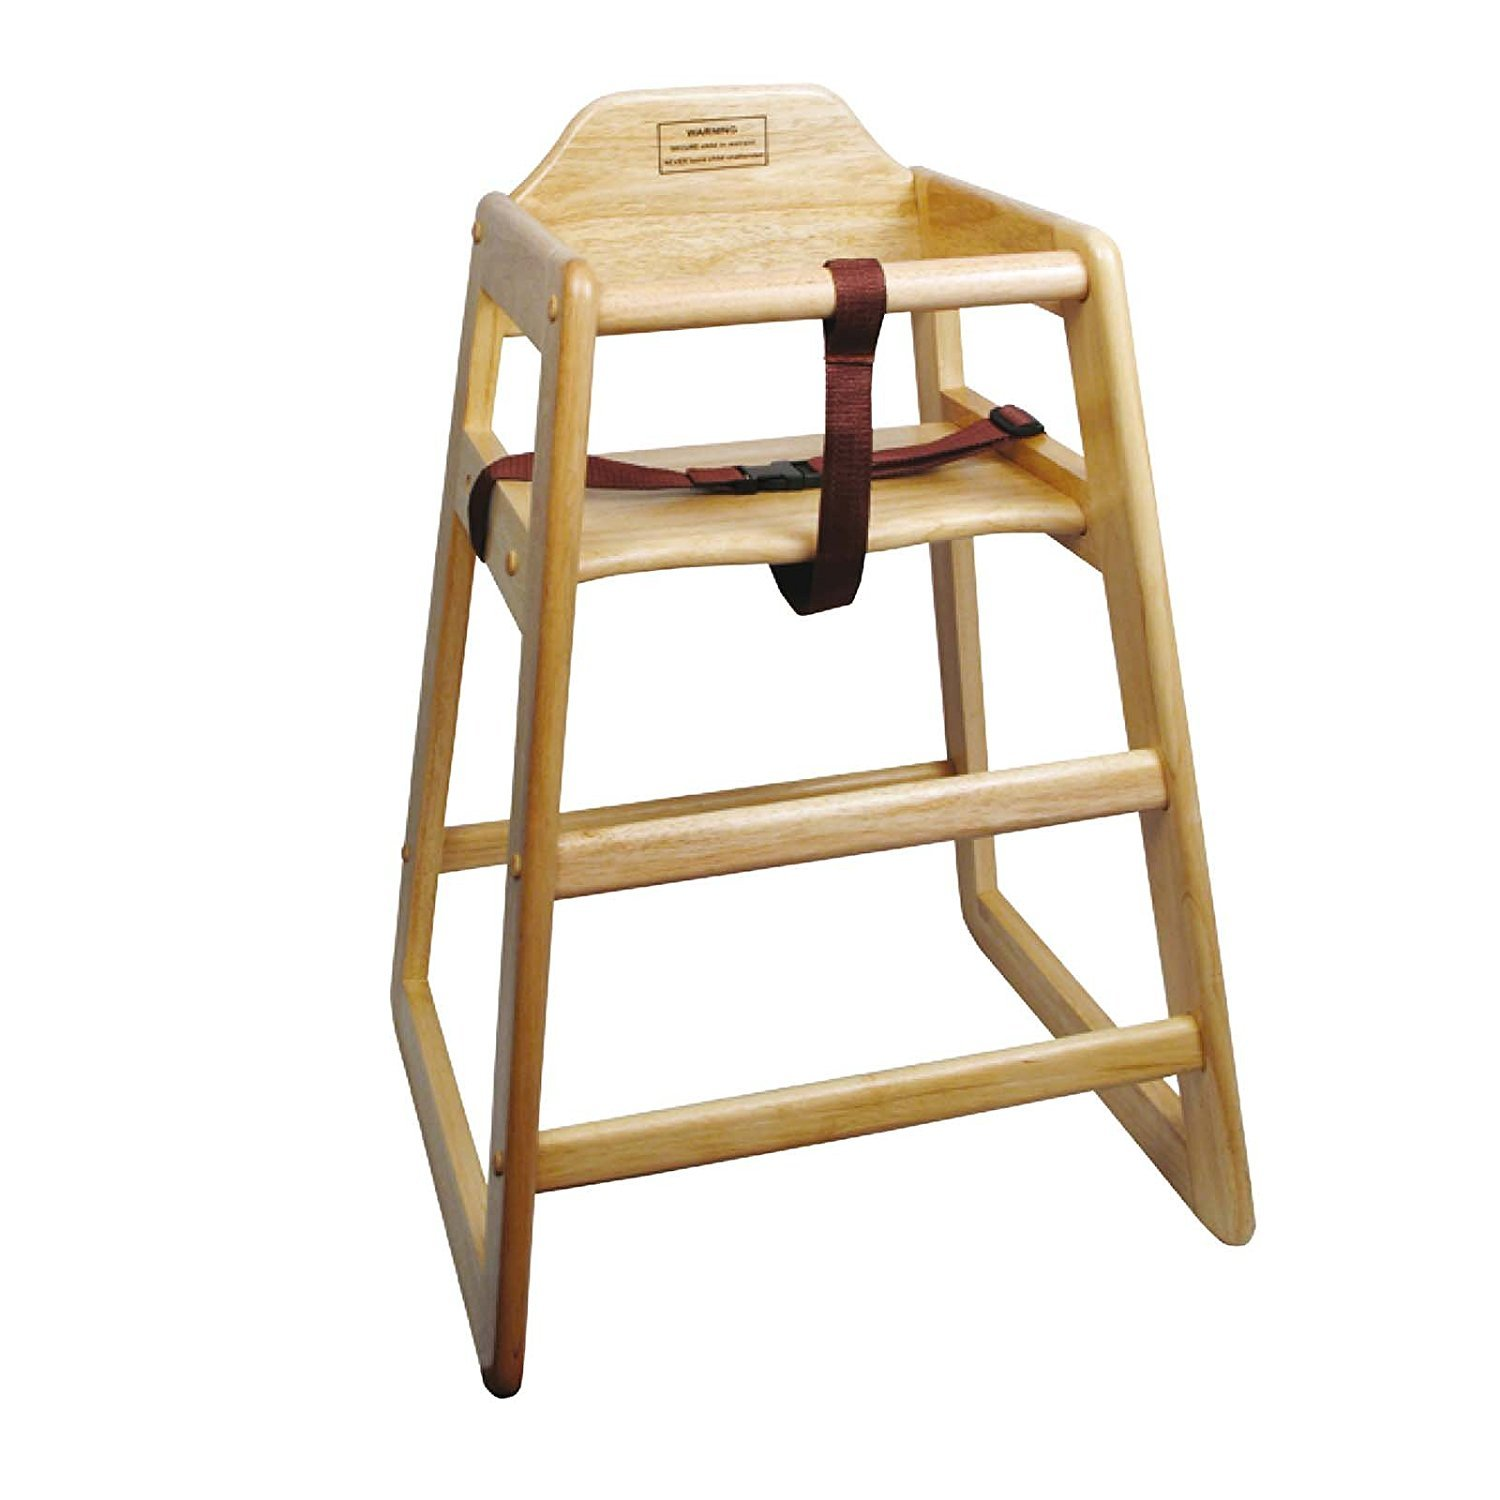 Winco CHH-101 Unassembled Wooden High Chair, Natural (Set of 2) by Winco